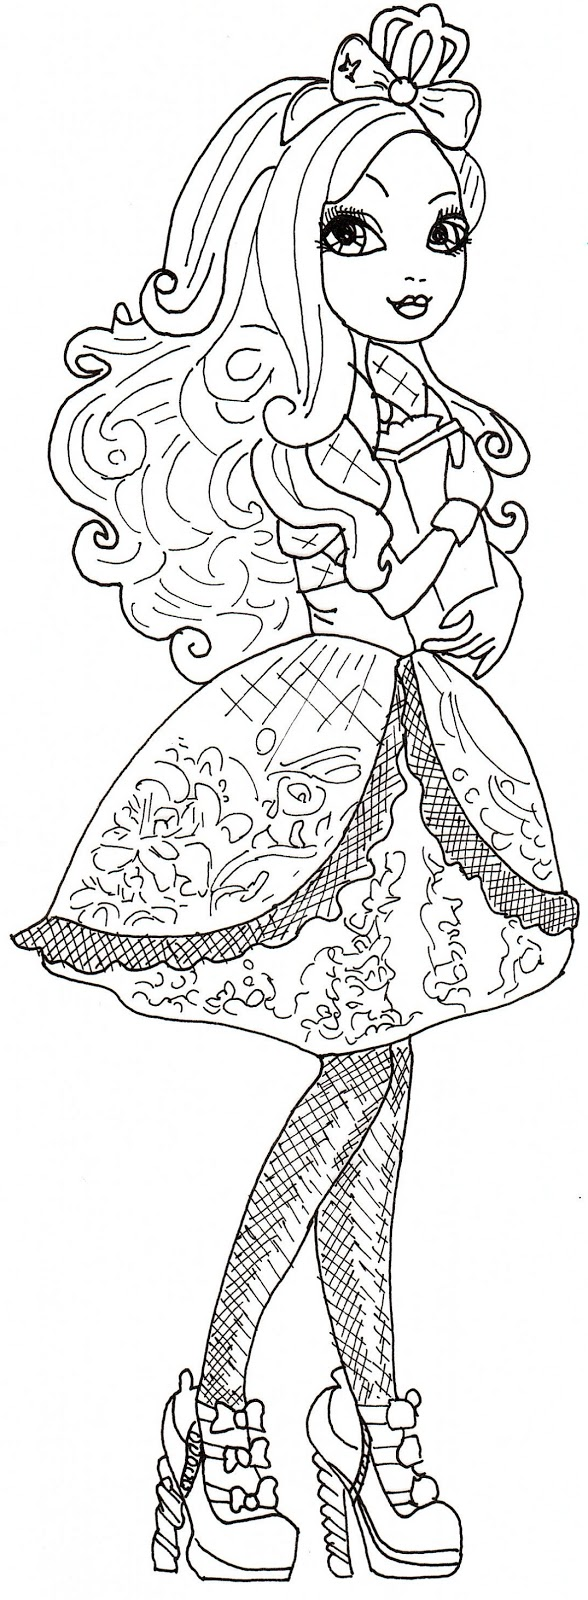 Free Printable Ever After High Coloring Pages June 2013 Free Printable High Coloring Pages